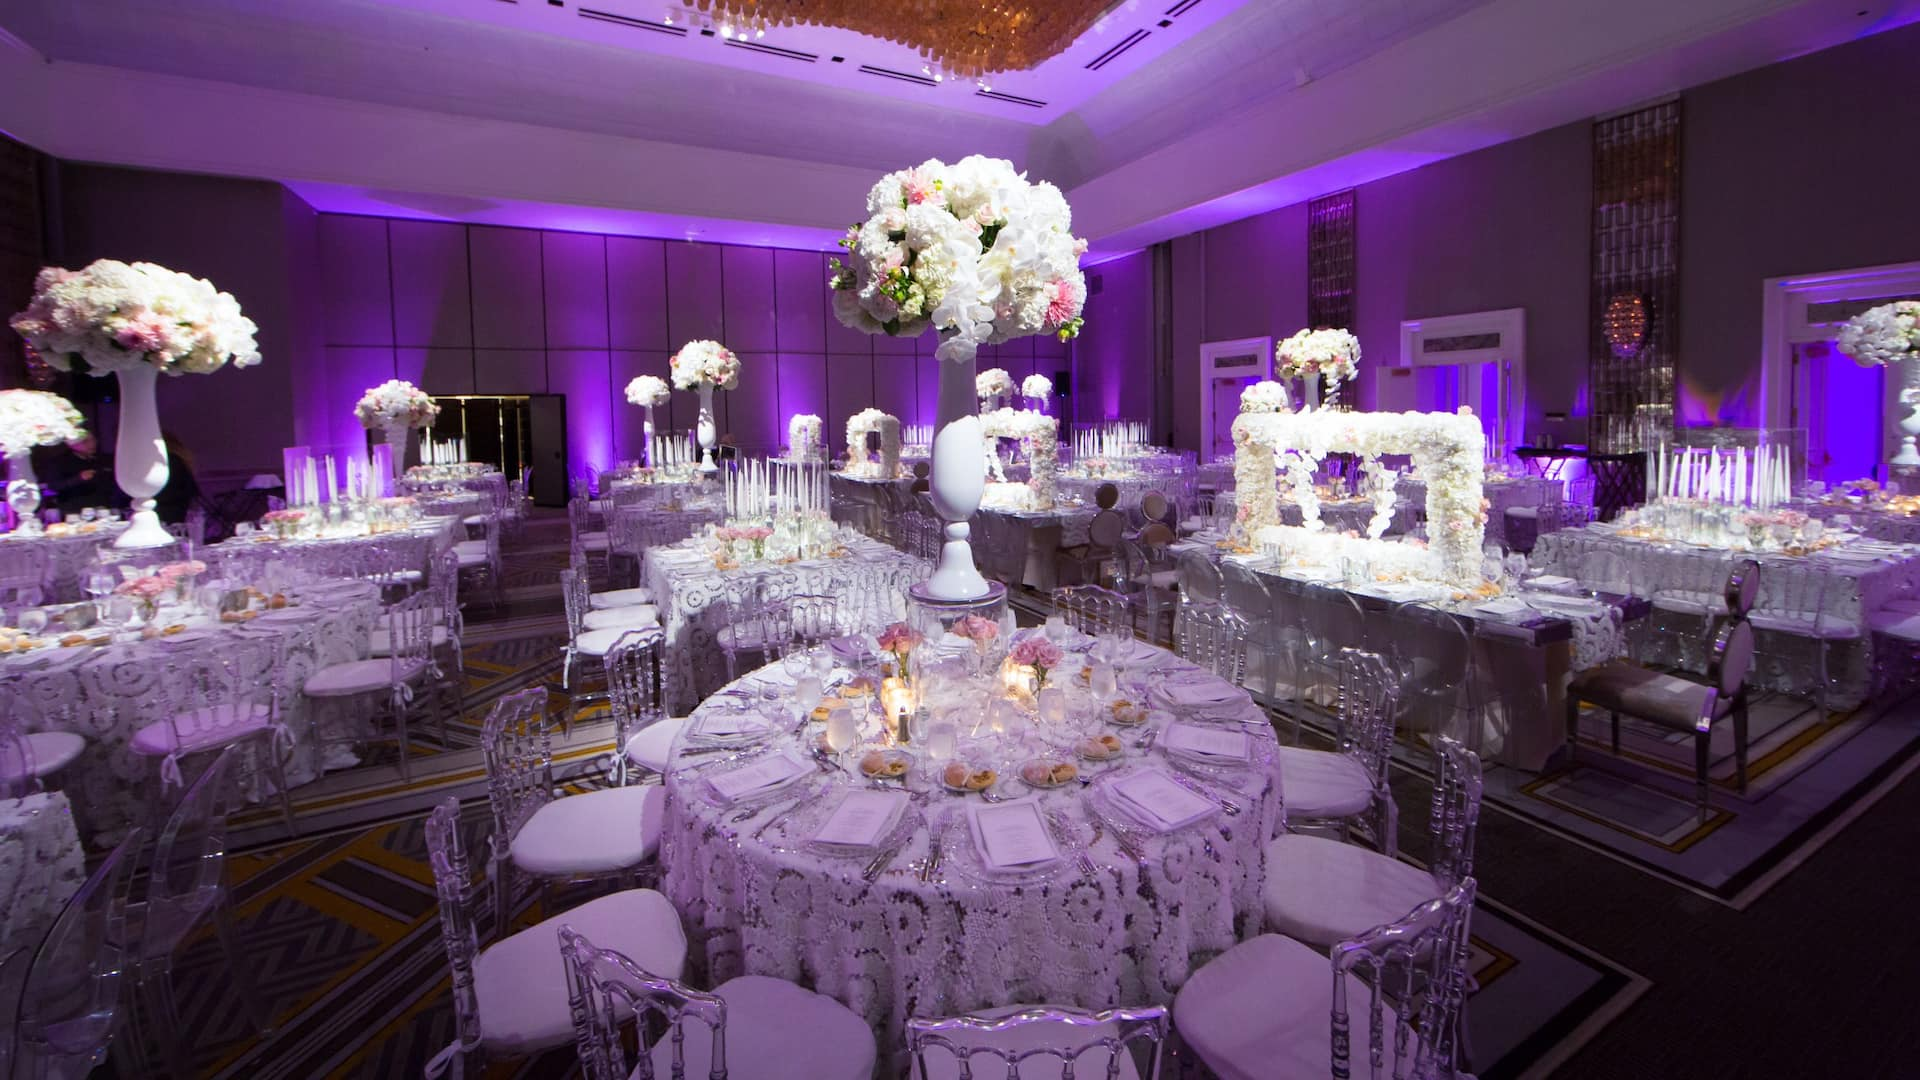 Grand Hyatt New York Ballroom Wedding Venue